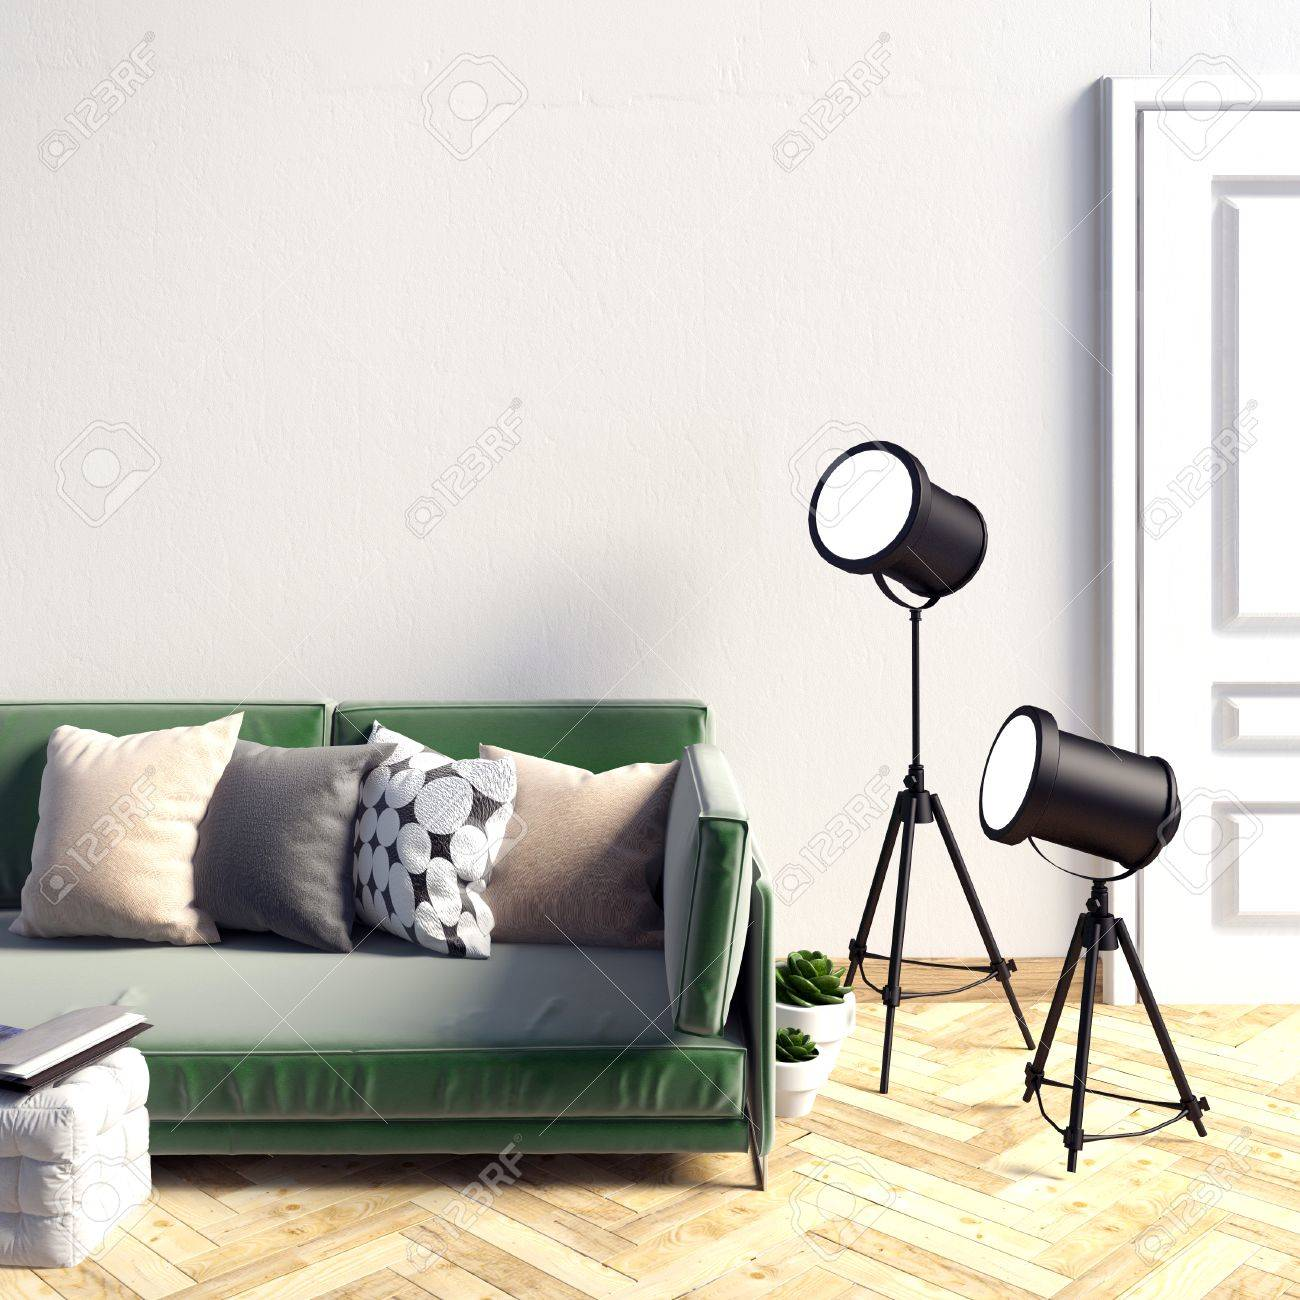 Deluxe Interior Living Illustration Mock Up Wall Living Resting Place Free Living Room Photos Interior Illustration Mock Up Wall living room Free Living Room Photos